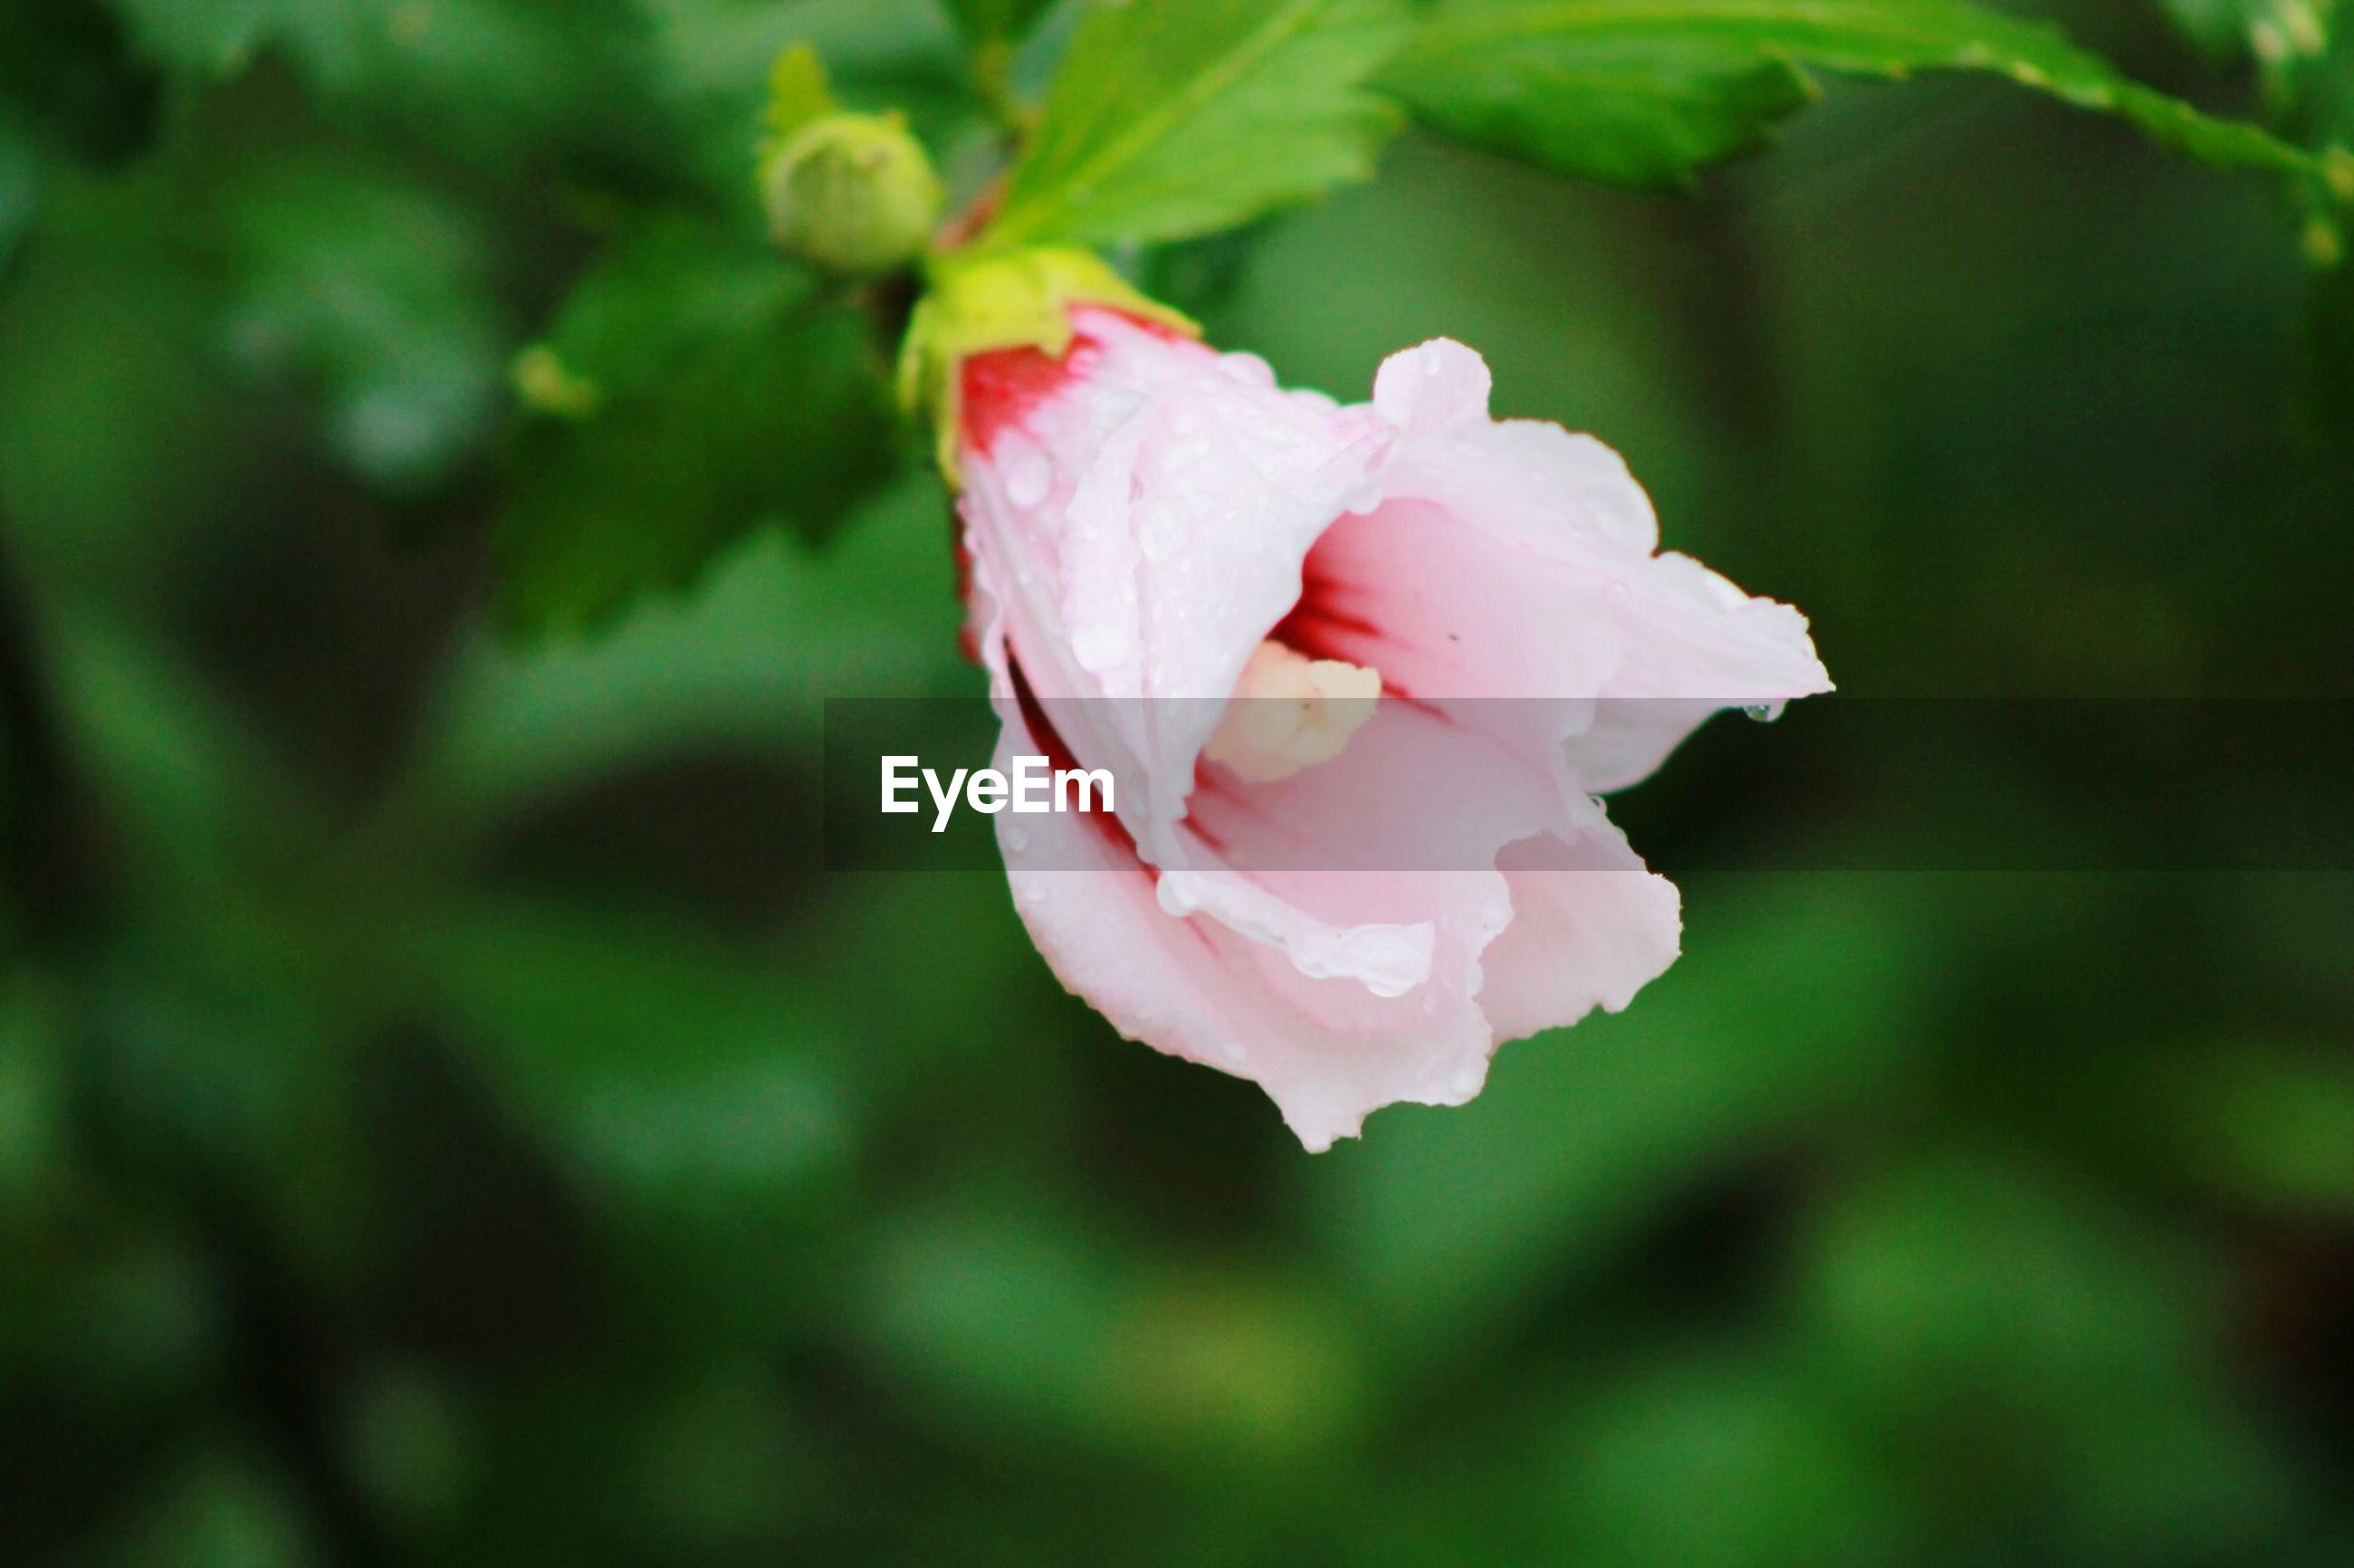 flower, petal, flower head, nature, fragility, pink color, growth, beauty in nature, rose - flower, no people, freshness, plant, blooming, close-up, day, springtime, outdoors, focus on foreground, wild rose